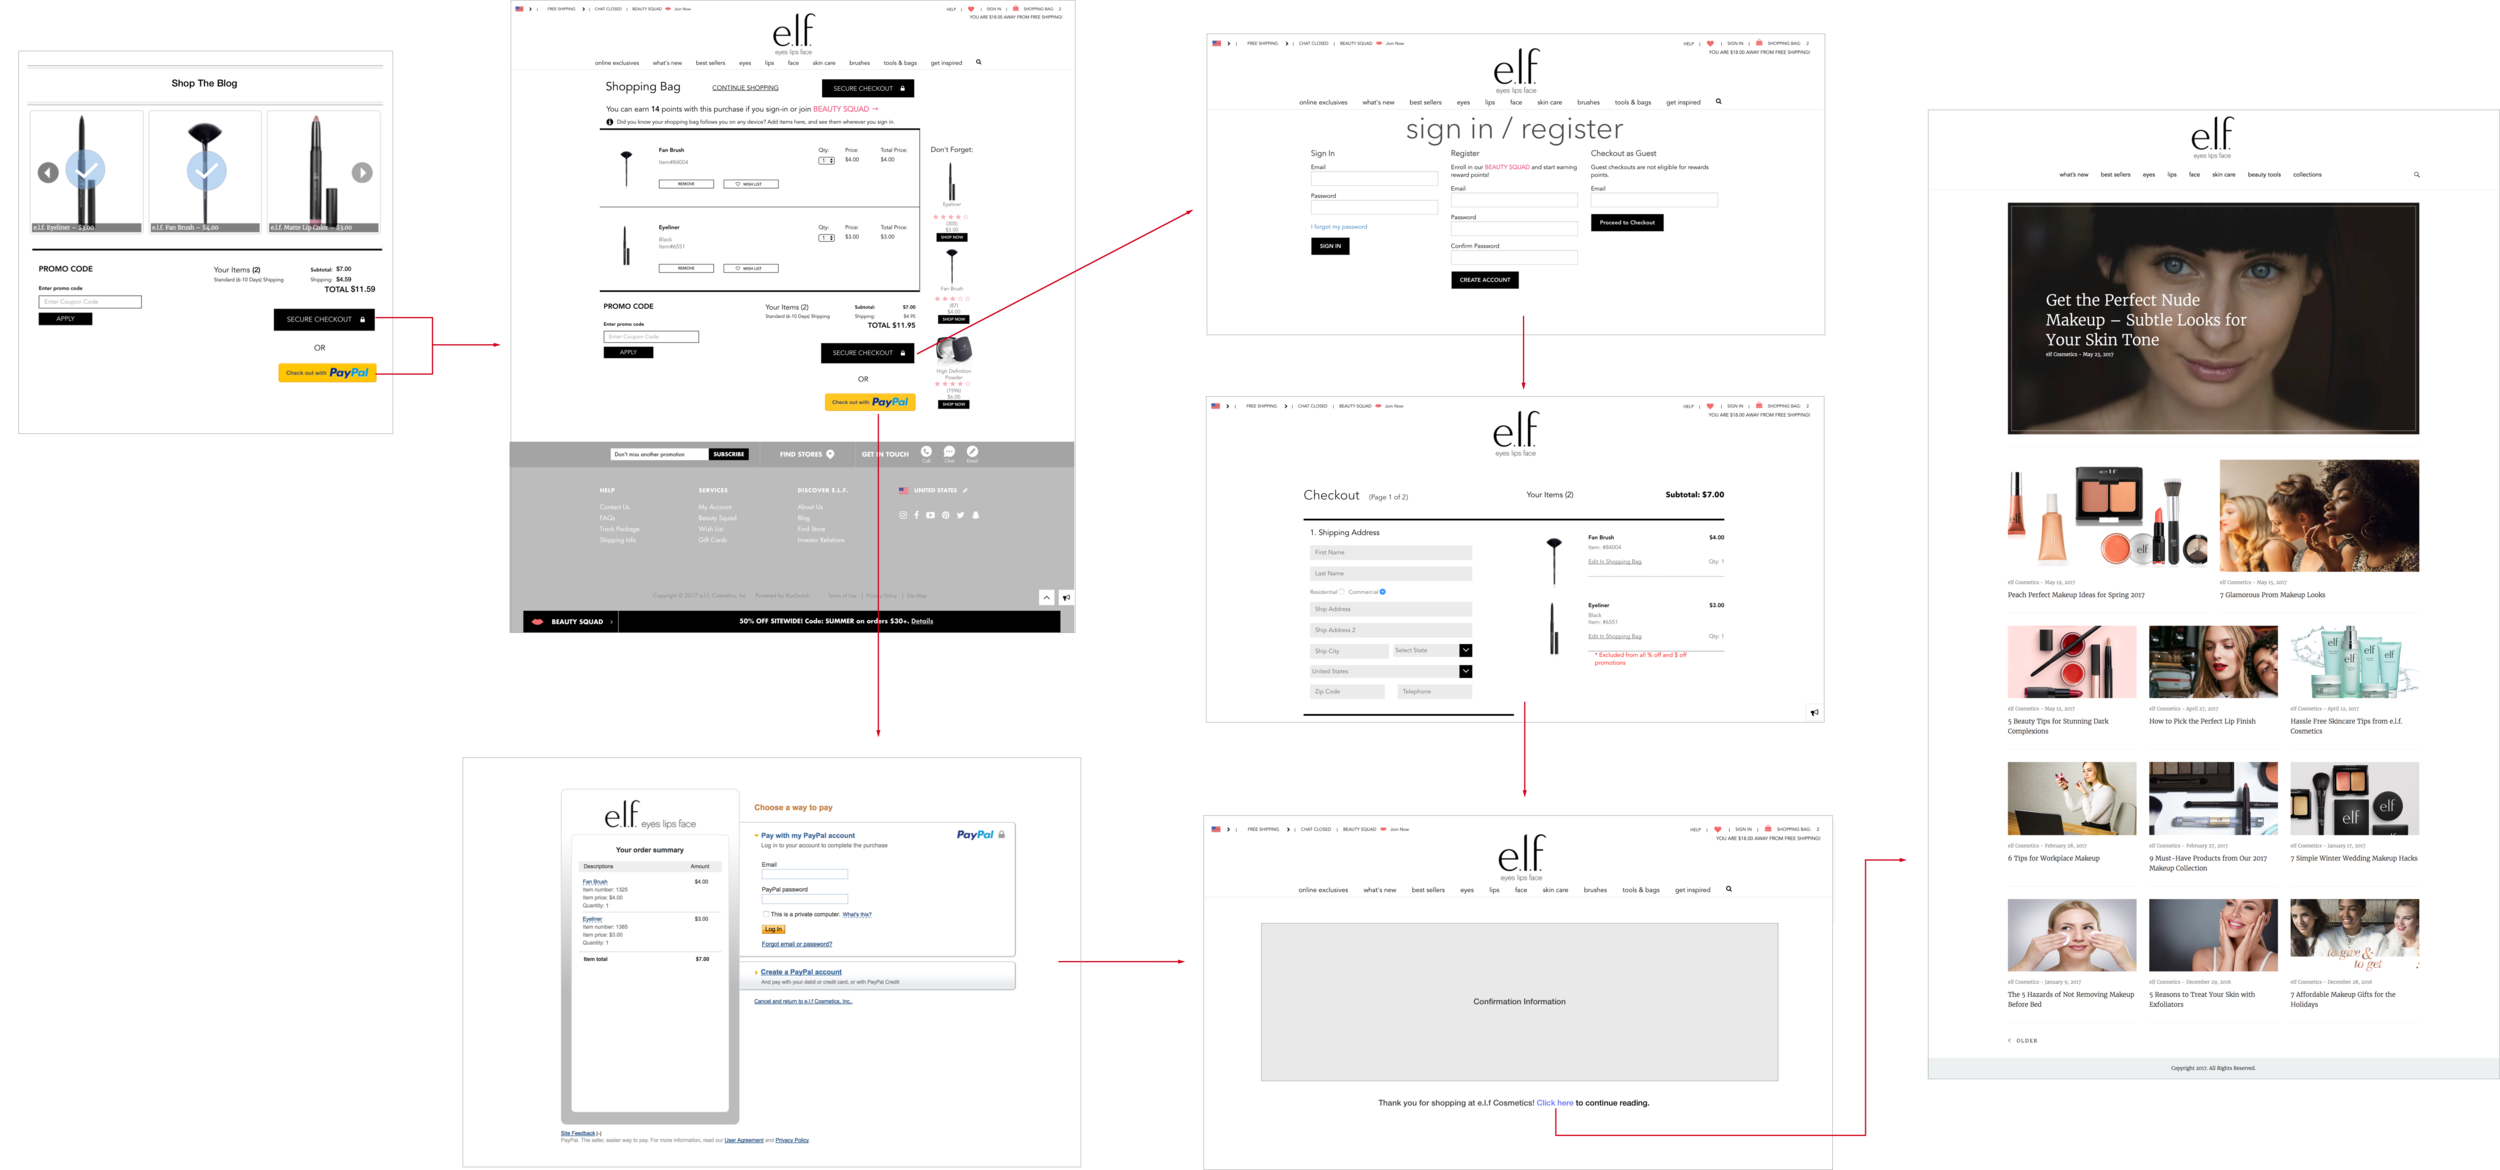 elf-blog-checkout-process.png